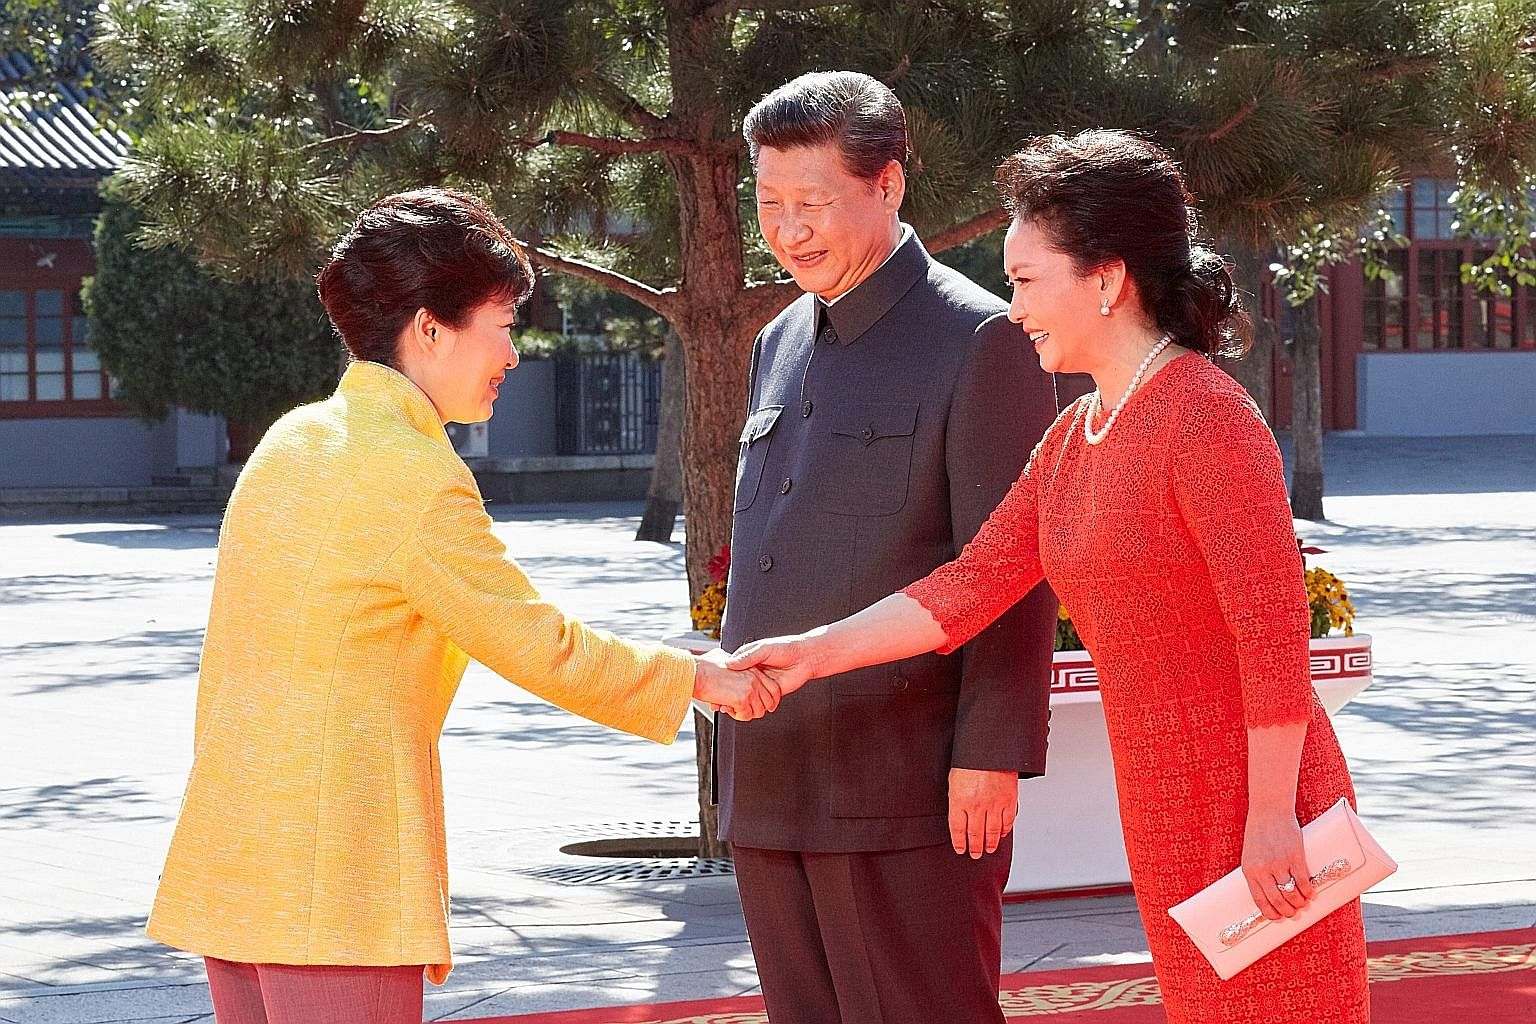 Ms Park Geun Hye (left) being welcomed by Mr Xi Jinping and his wife Peng Liyuan on Sept 3 at Tiananmen Square, where a military parade was held to commemorate the end of World War II.